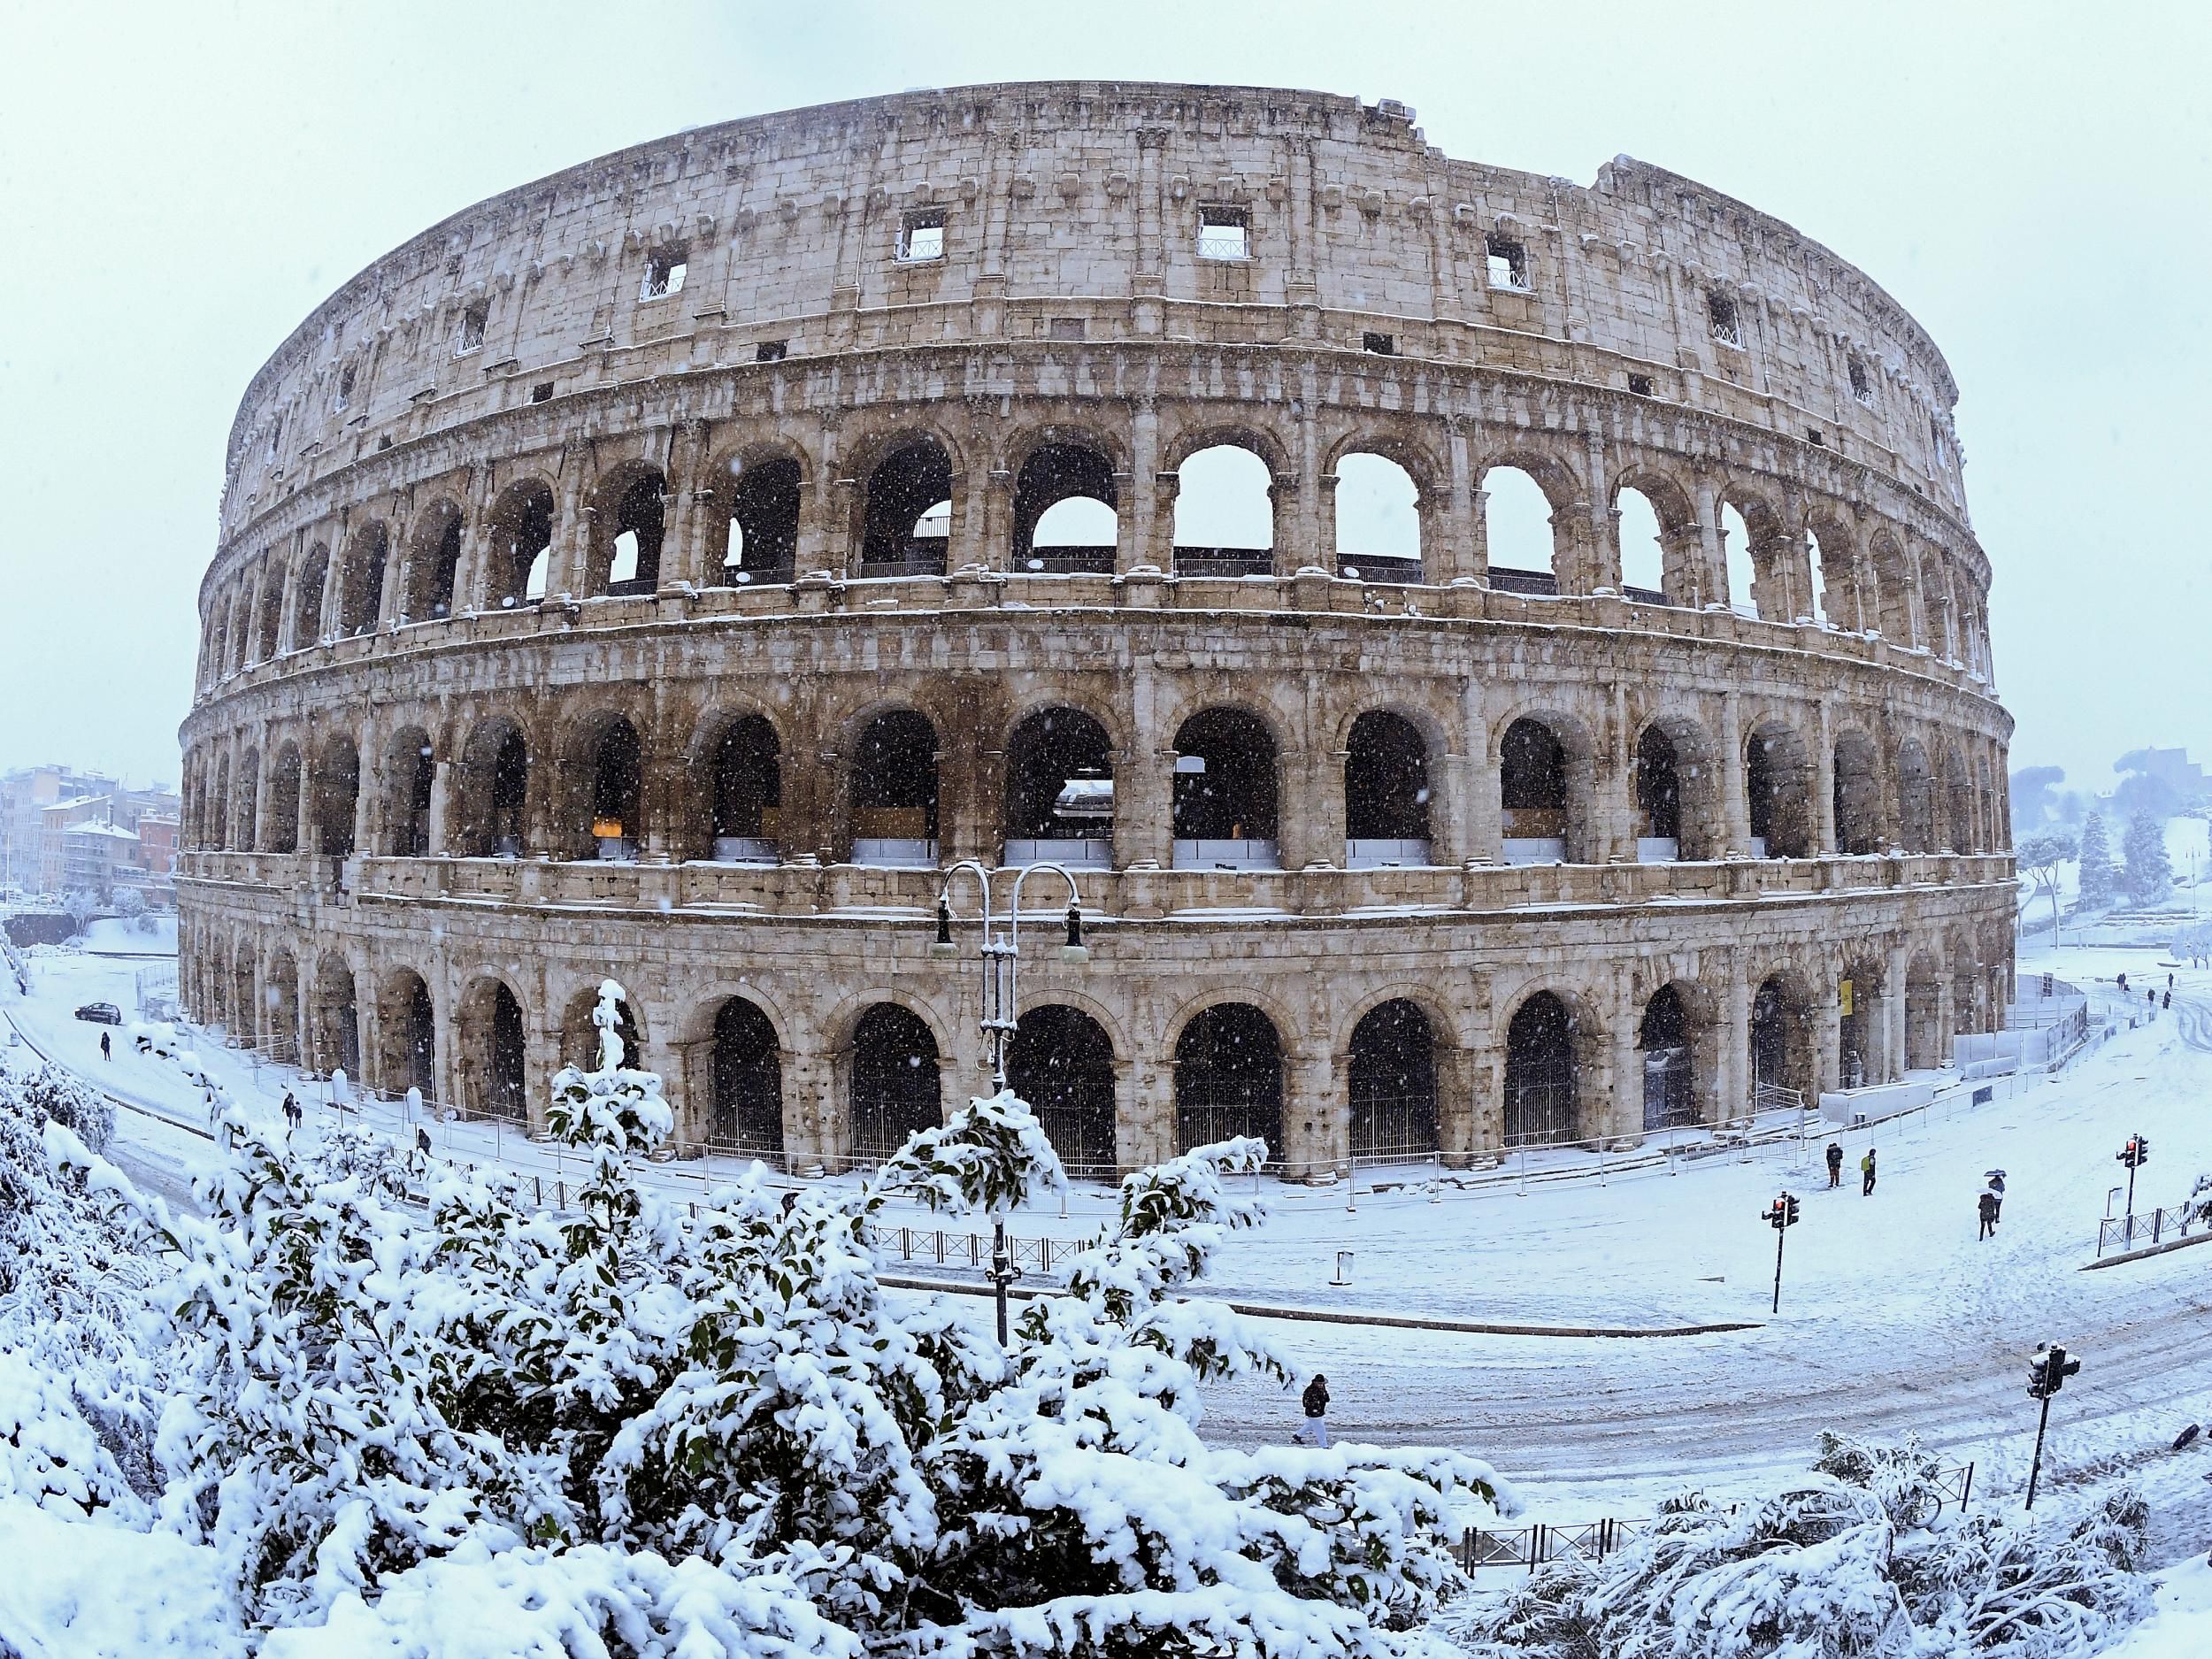 Snow in Rome causes Italian soldiers to be deployed to capital's streets as arctic blast sweeps across Europe